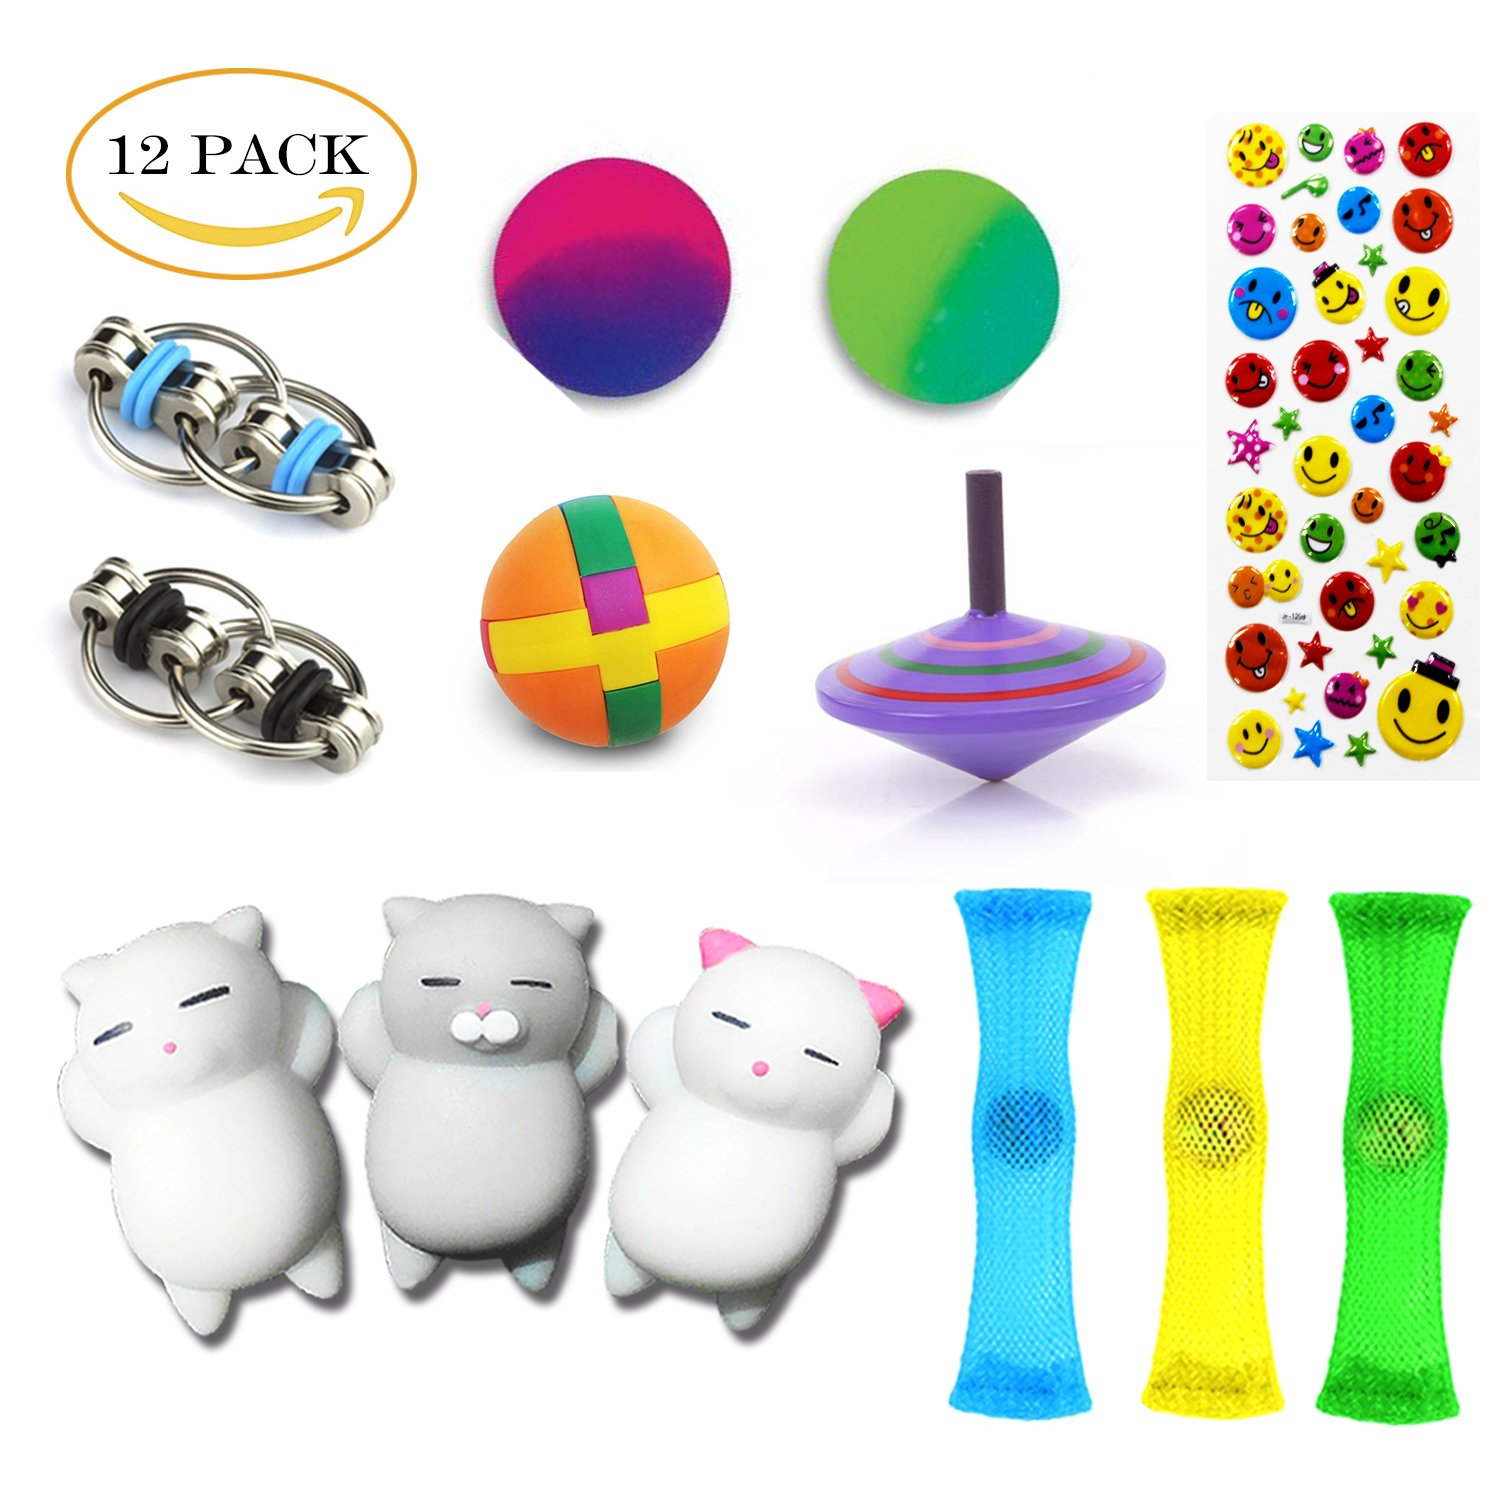 12 Pack Sensory Toys Set, Relieves Stress and Anxiety Fidget Toy for Children Adults, Special Toys Assortment for Birthday Party Favors, Classroom Rewards Prizes, Carnival, Piñata Goodie Bag Fillers